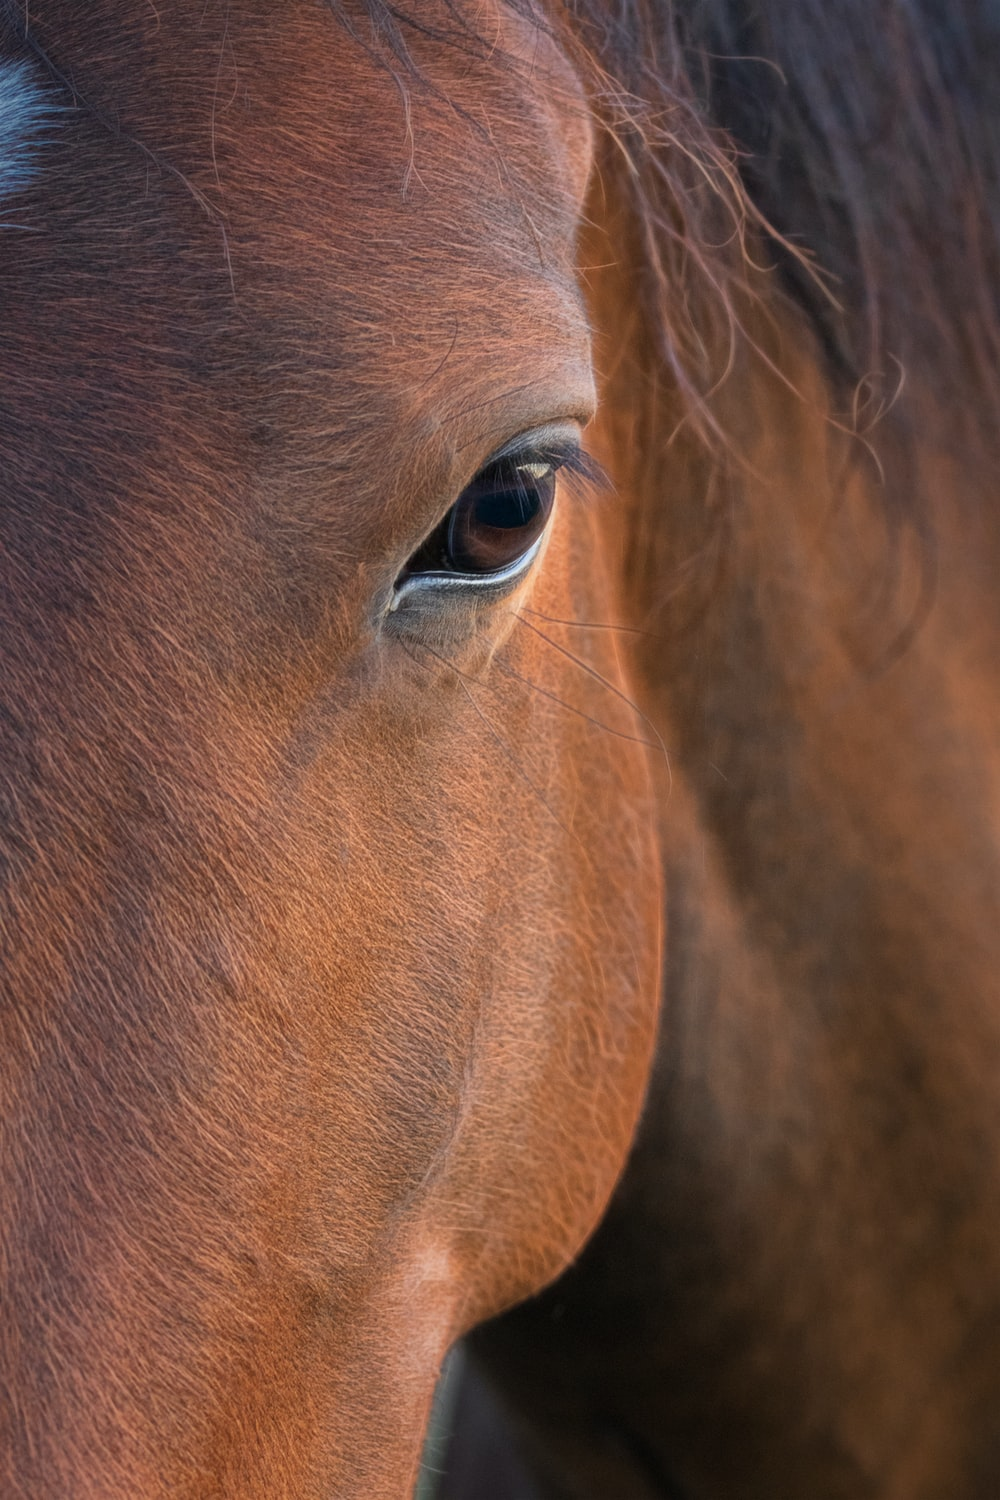 brown horses eye in close up photography